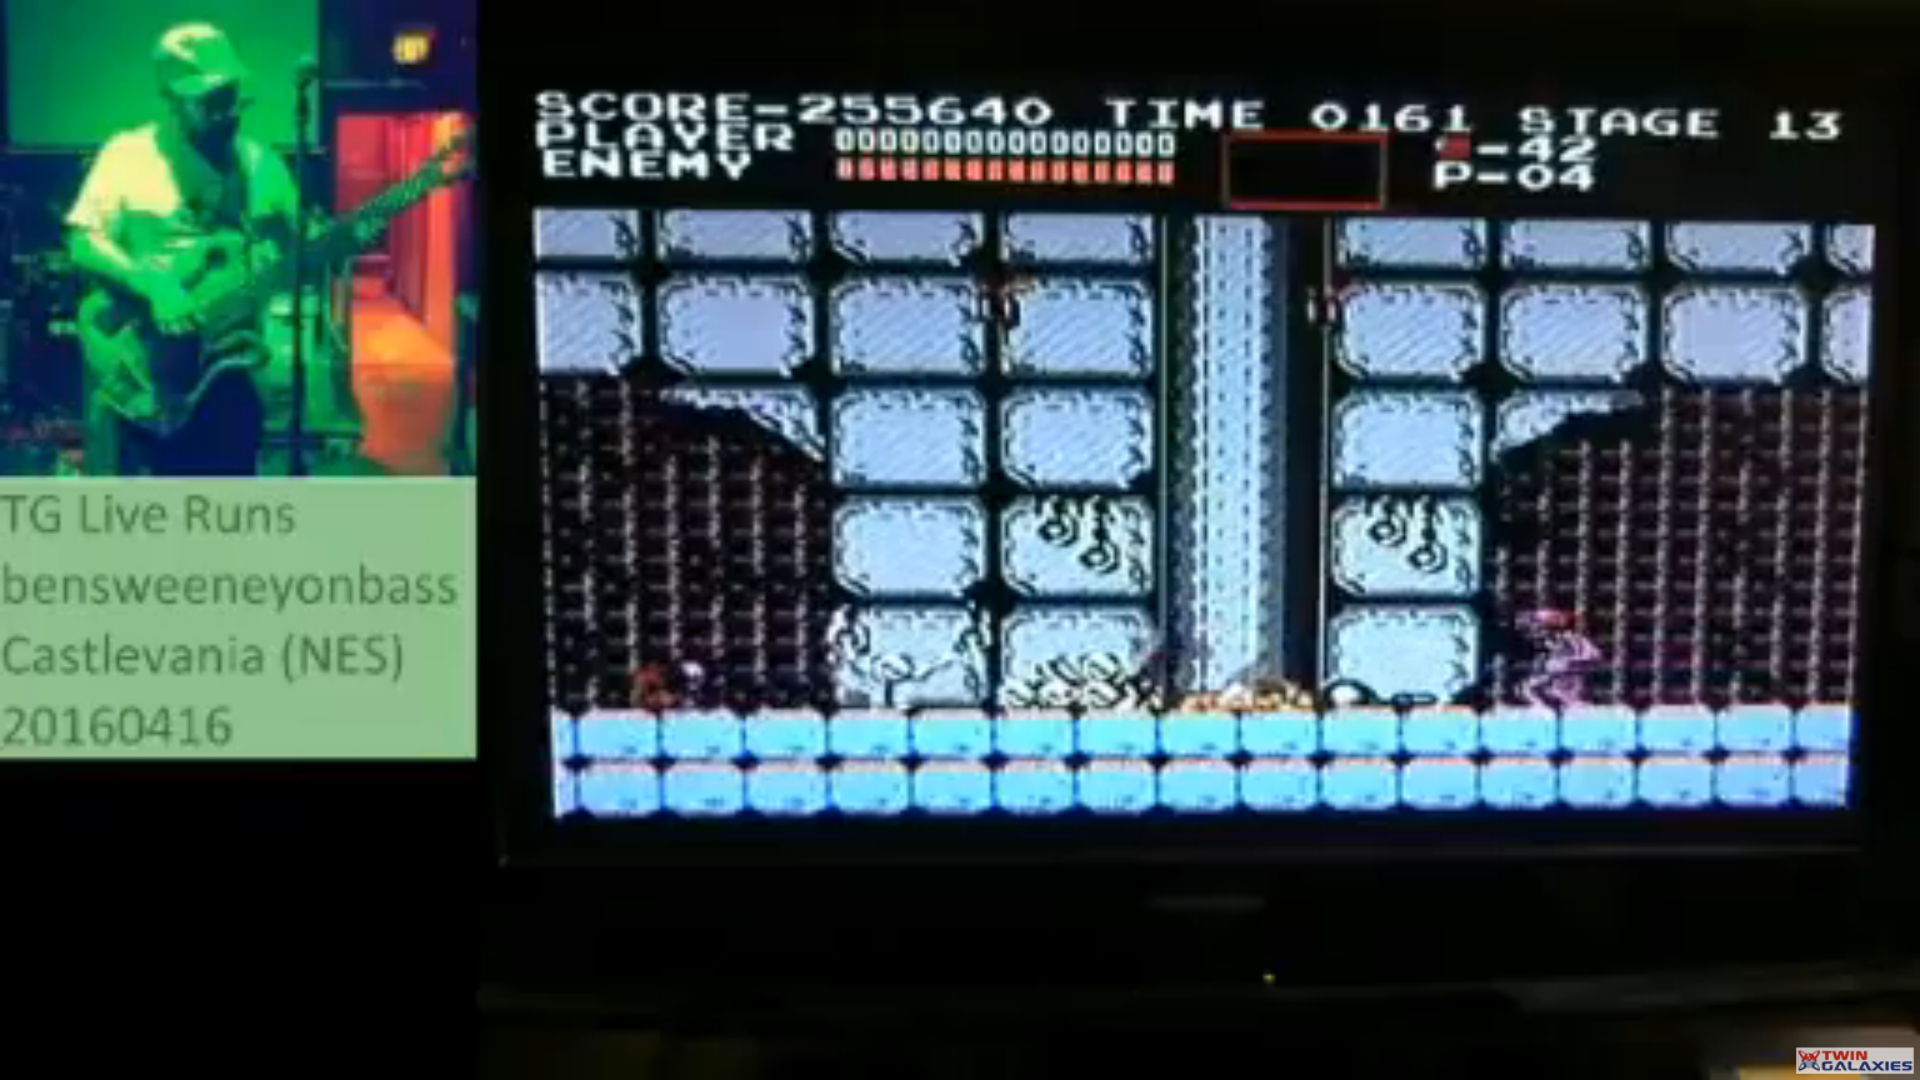 bensweeneyonbass: Castlevania (NES/Famicom) 255,640 points on 2017-03-28 23:11:45